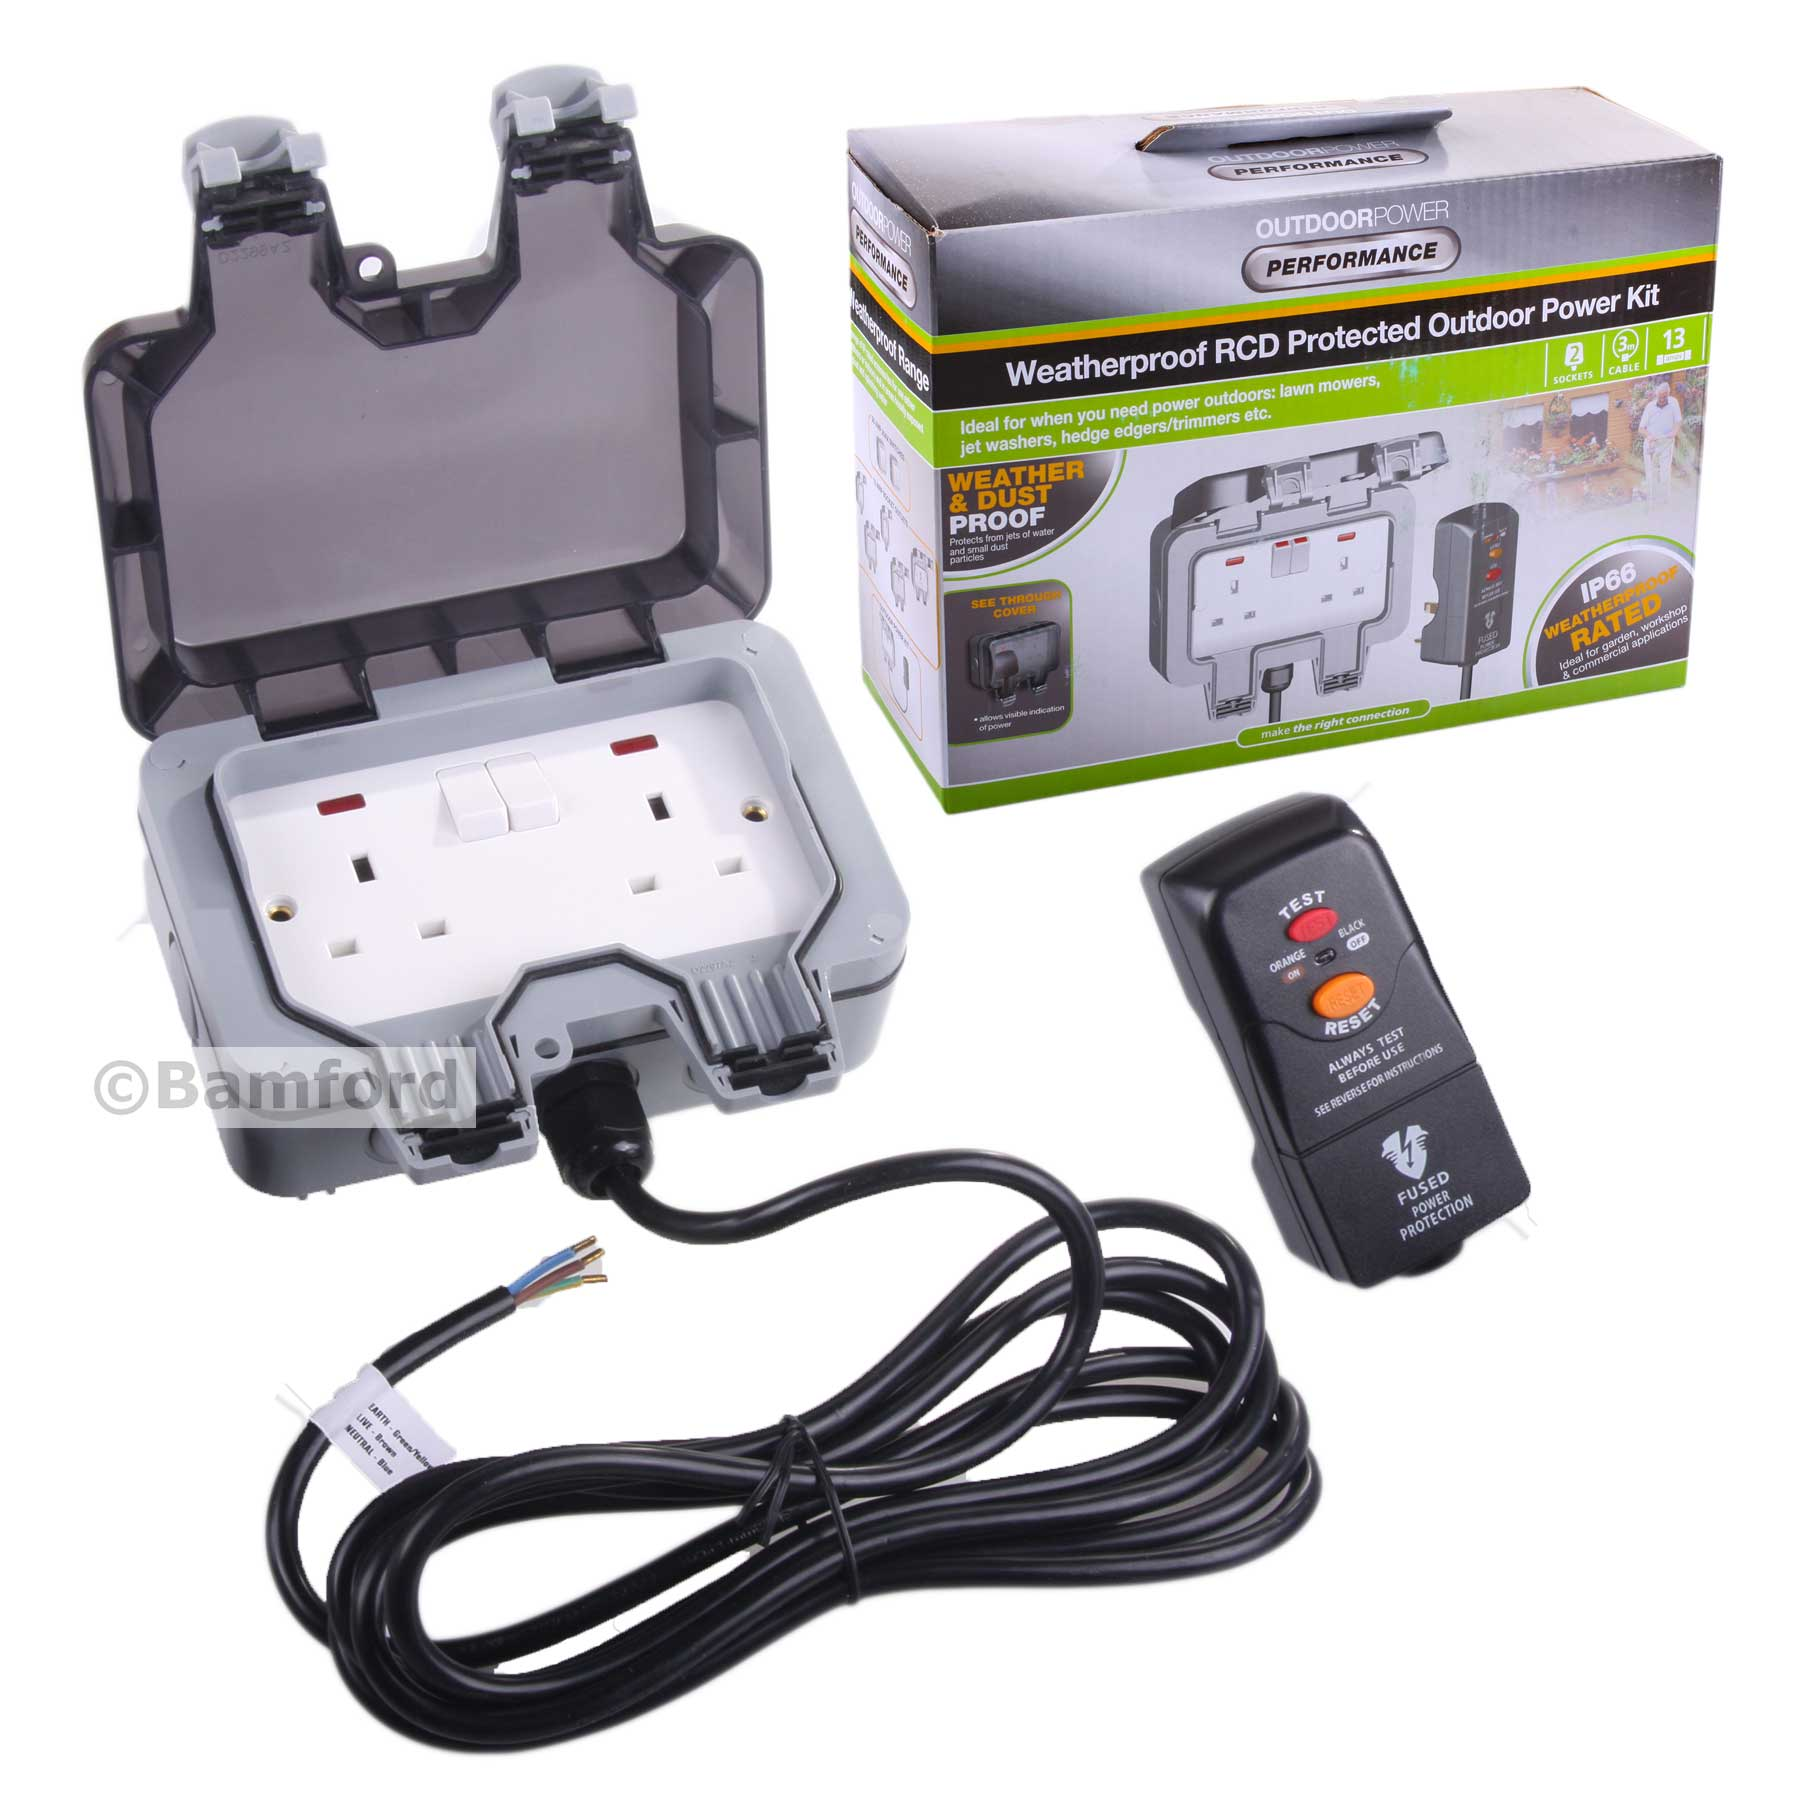 Masterplug Weatherproof Outdoor Mains Power Kit Twin